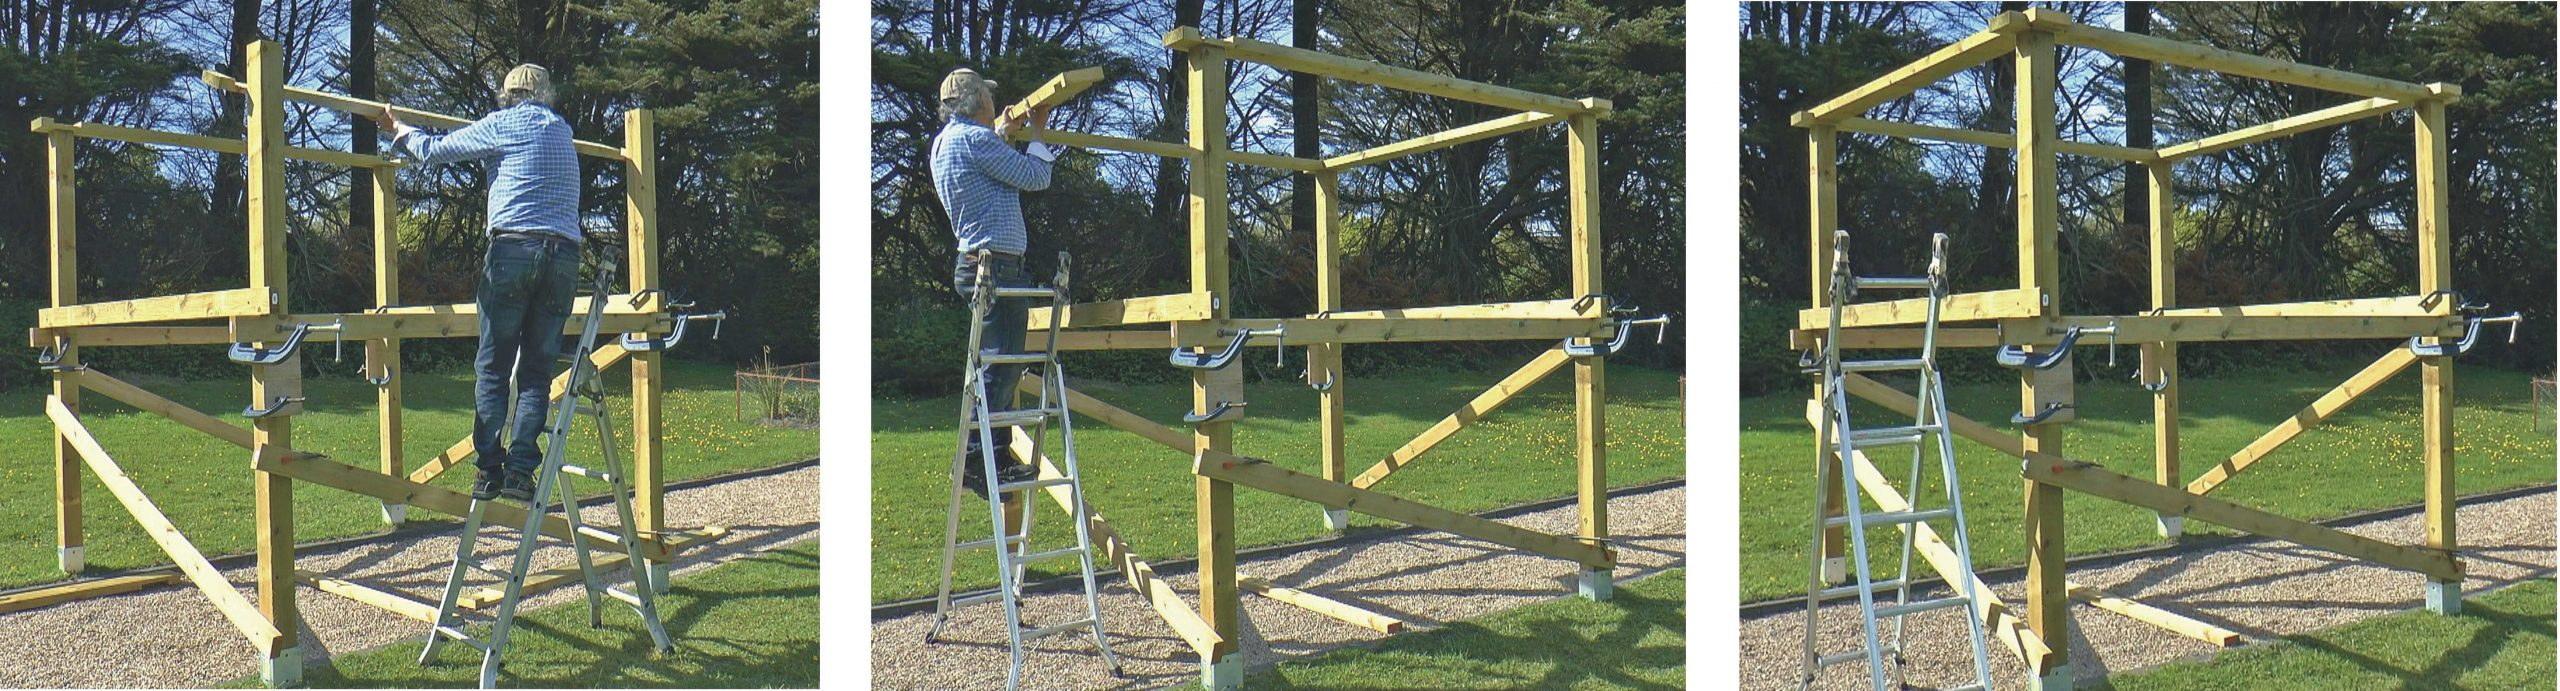 Putting the pergola top beams in place